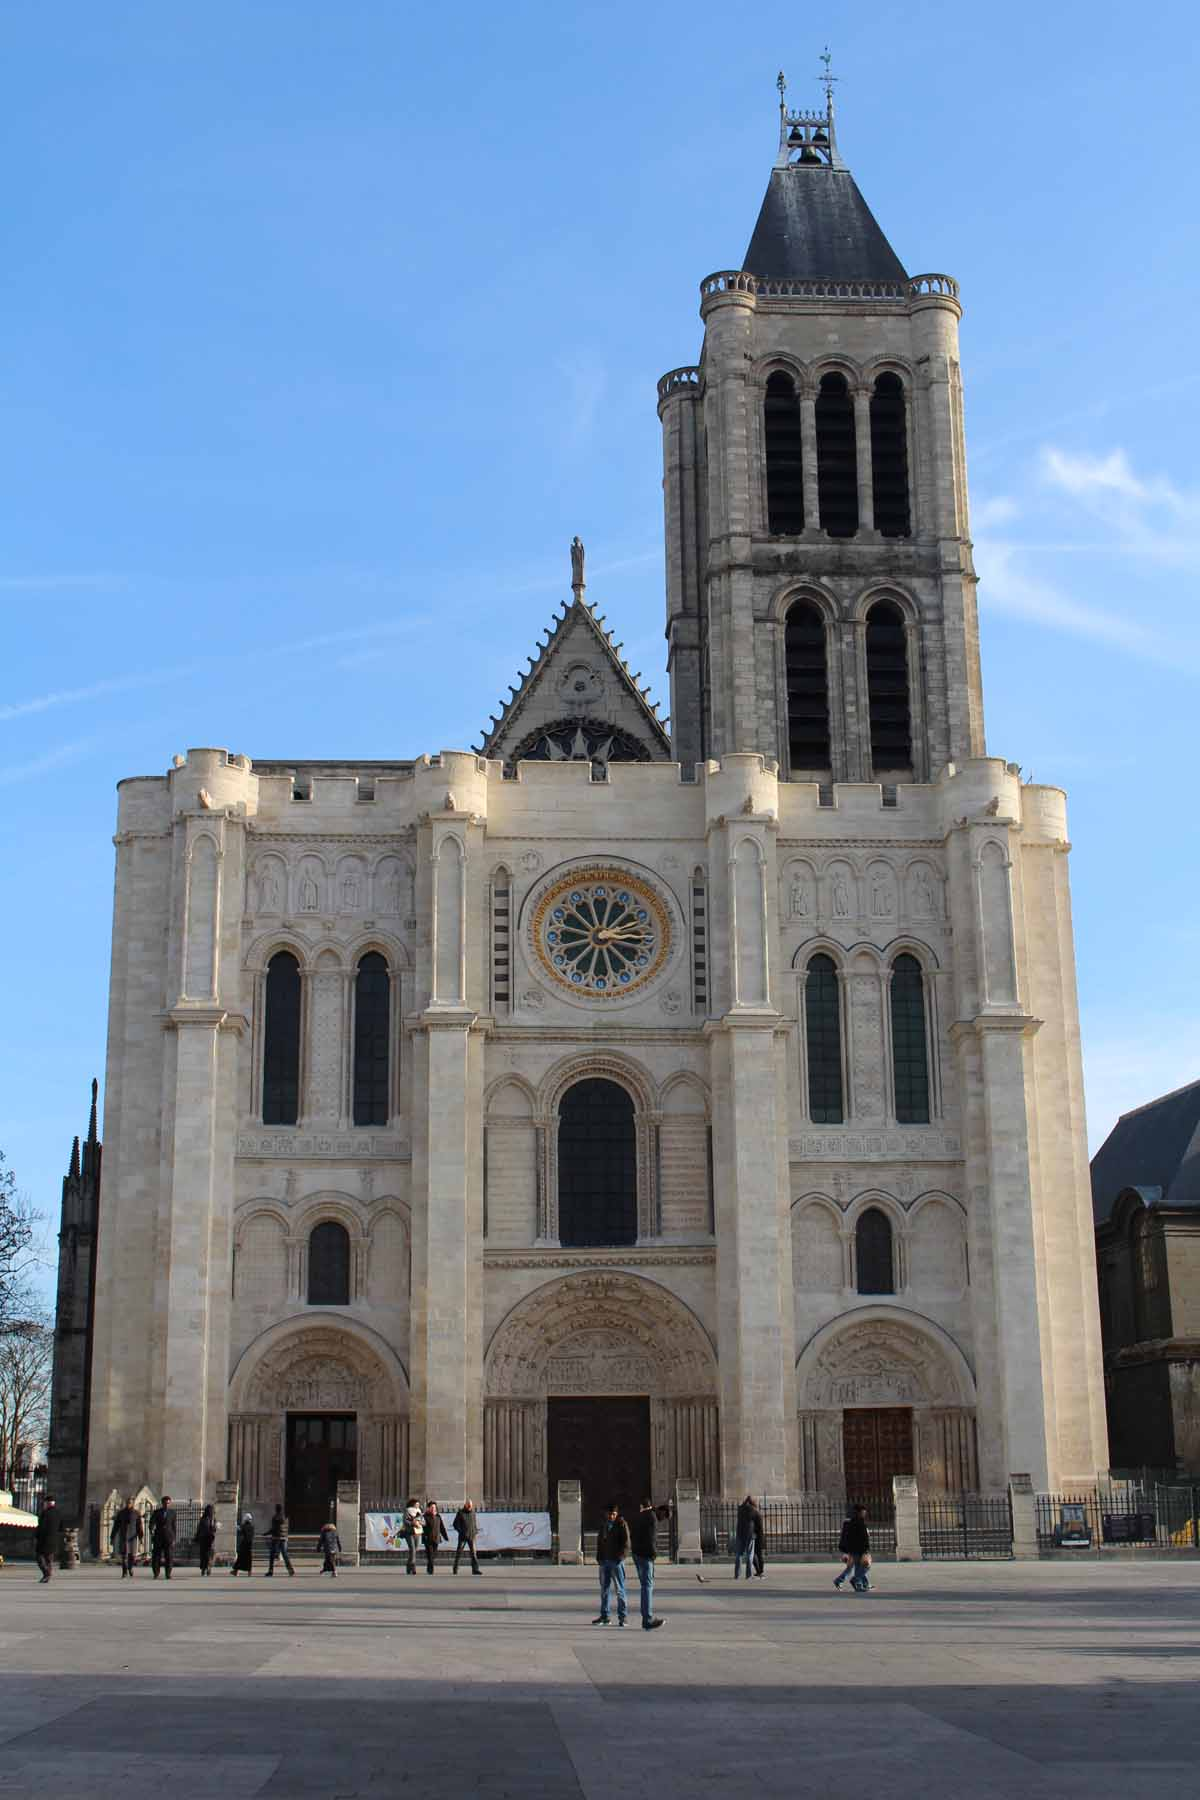 Saint-Denis basilica, Paris